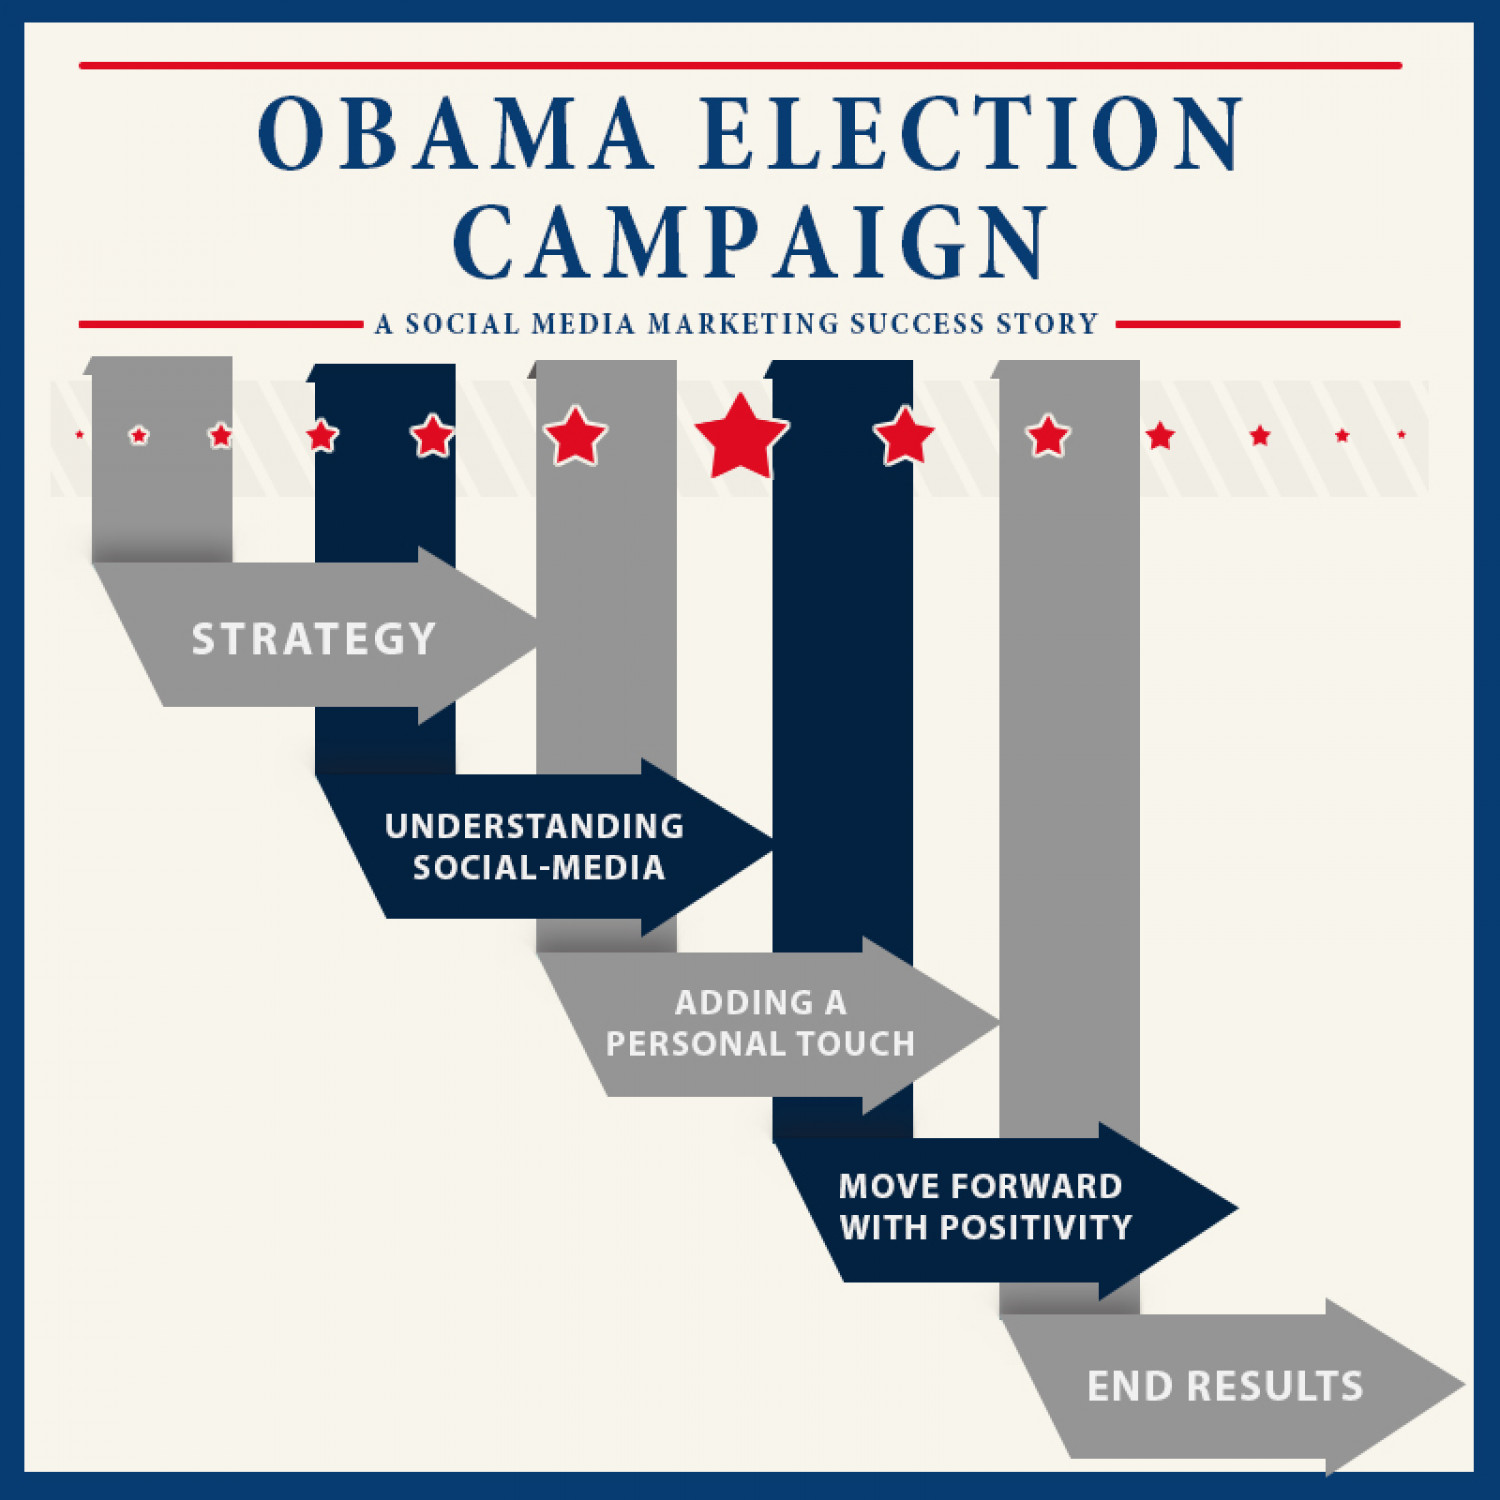 OBAMA ELECTION CAMPAIGN SOCIAL MEDIA SUCCESS Infographic